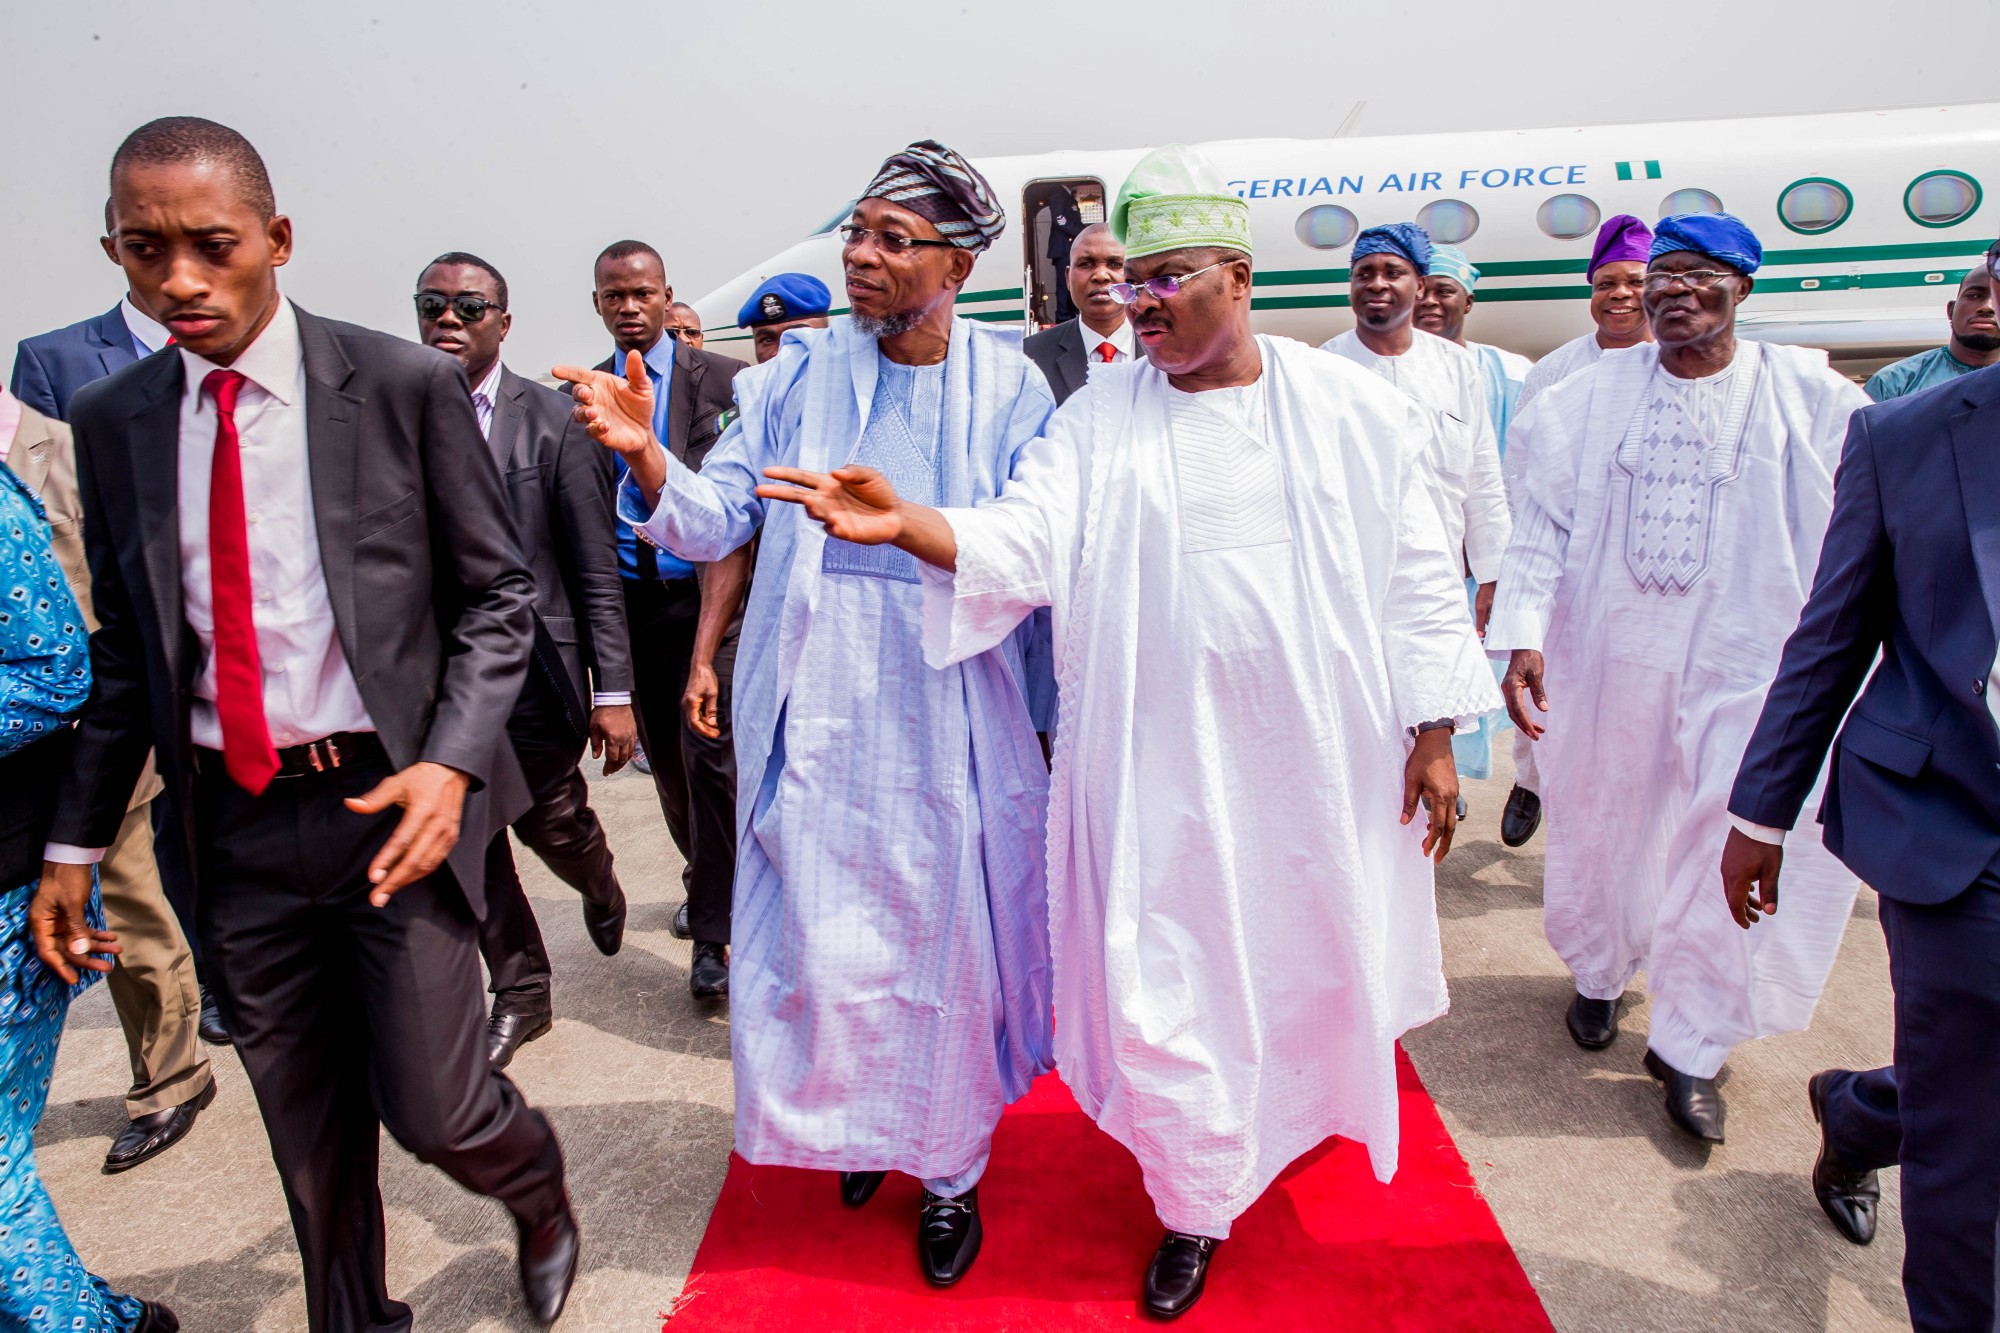 Governor Ajimobi and Governor Aregbesola discuss as they walk back after seeing off Vice- President Prof. Yemi Osinbajo to his plane. (Photo by: Tolani Alli)